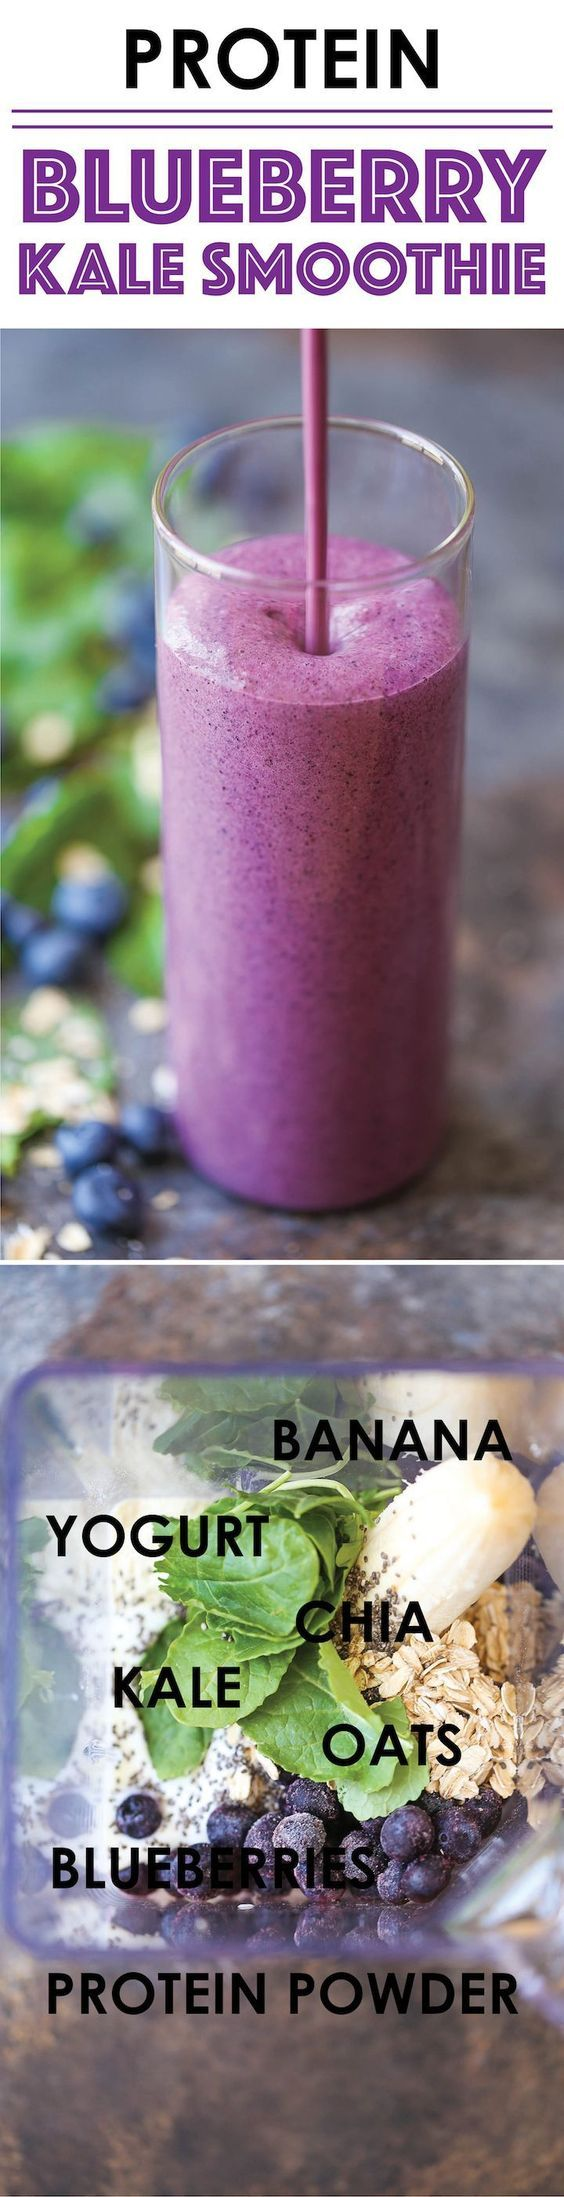 Protein Blueberry Kale Smoothie - A protein-packed healthy yet equally tasty breakfast that can be made in just 5 min! And you won't even taste the kale!